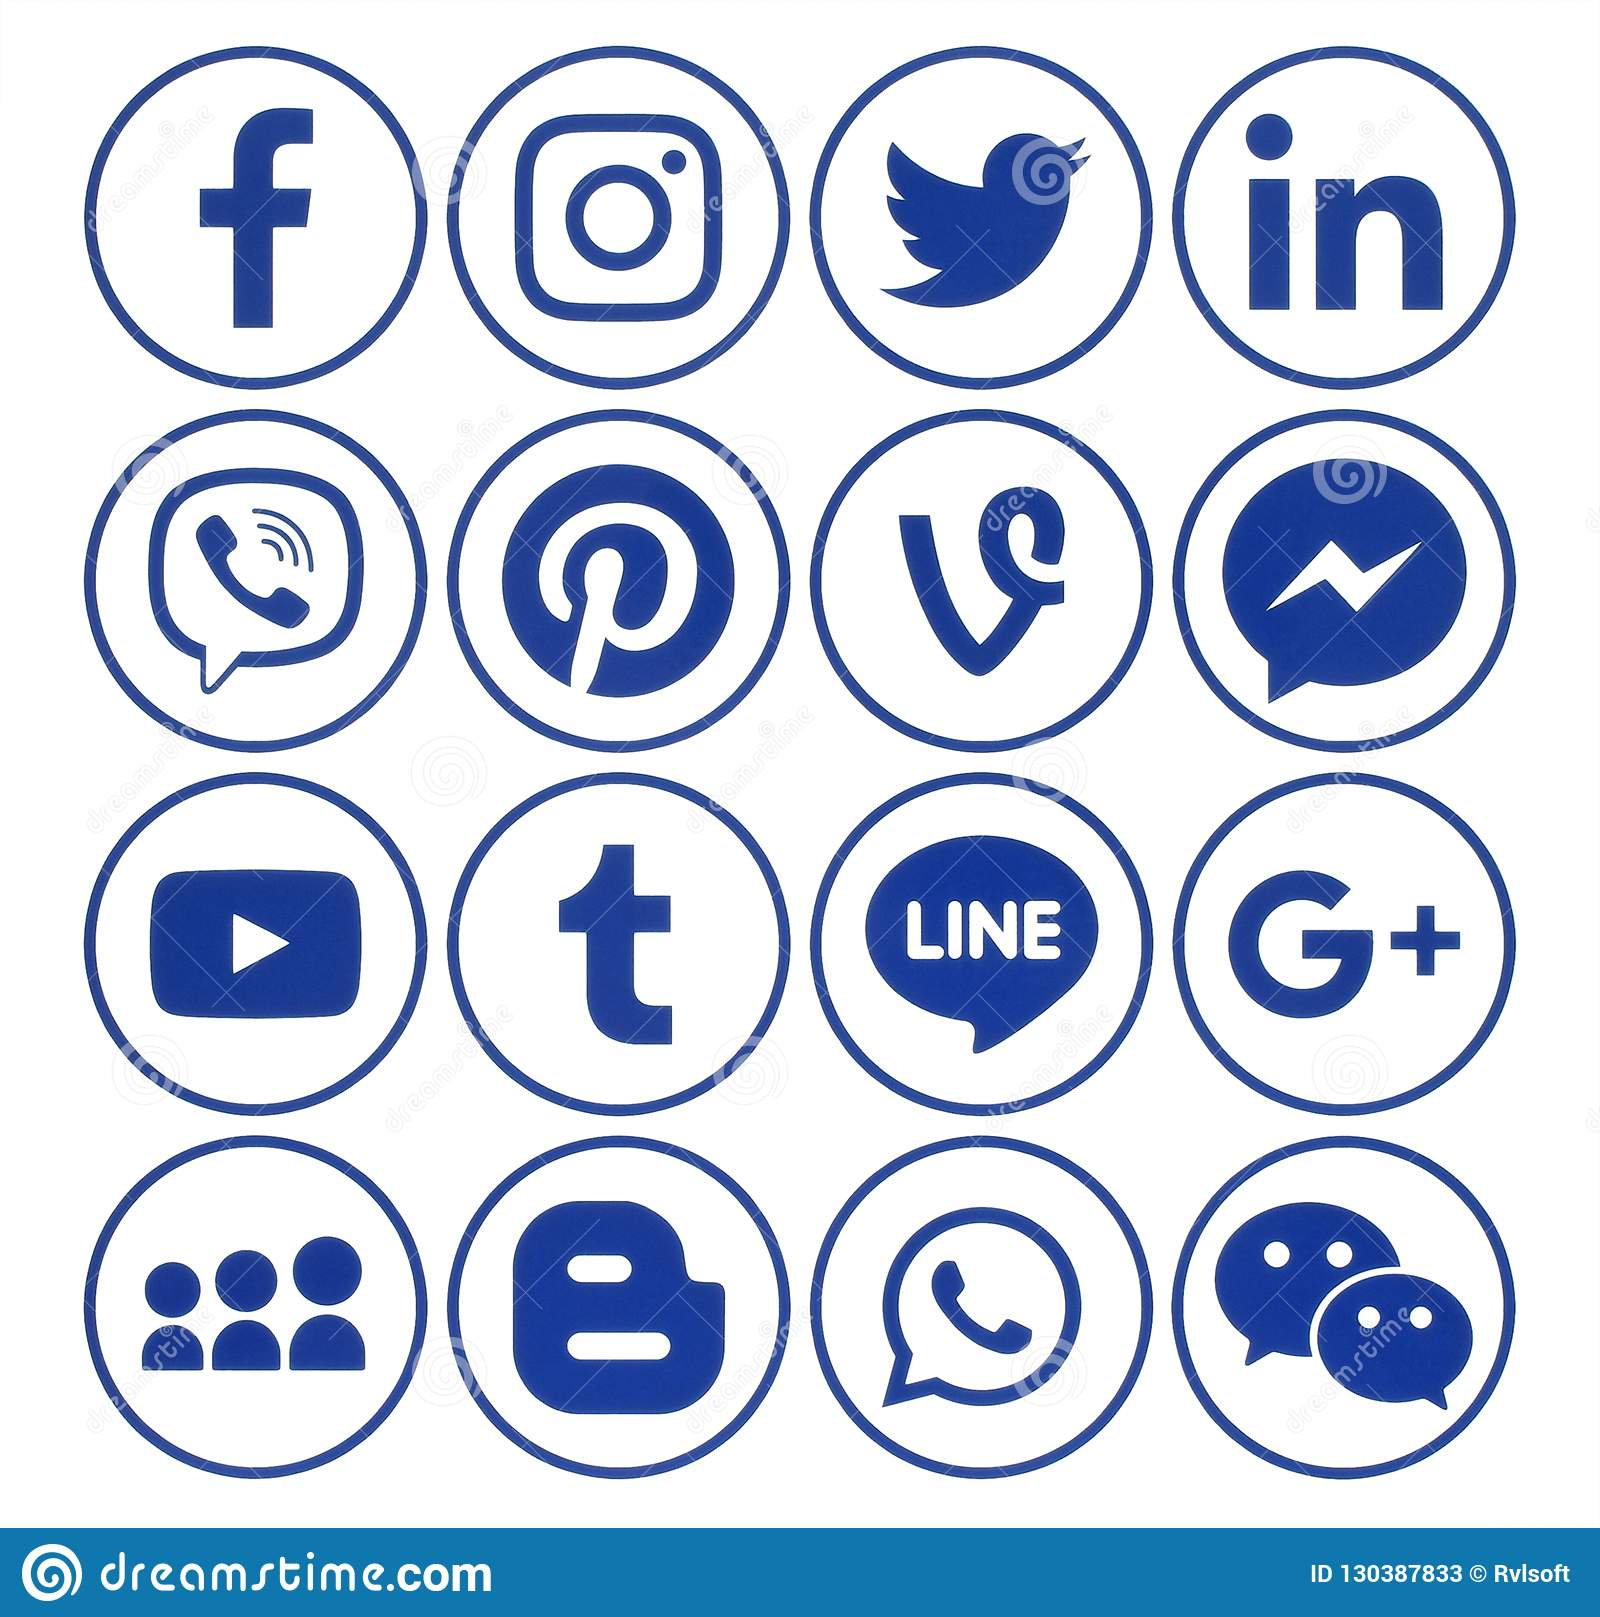 Collection Of Popular Circle Blue Social Media Icons